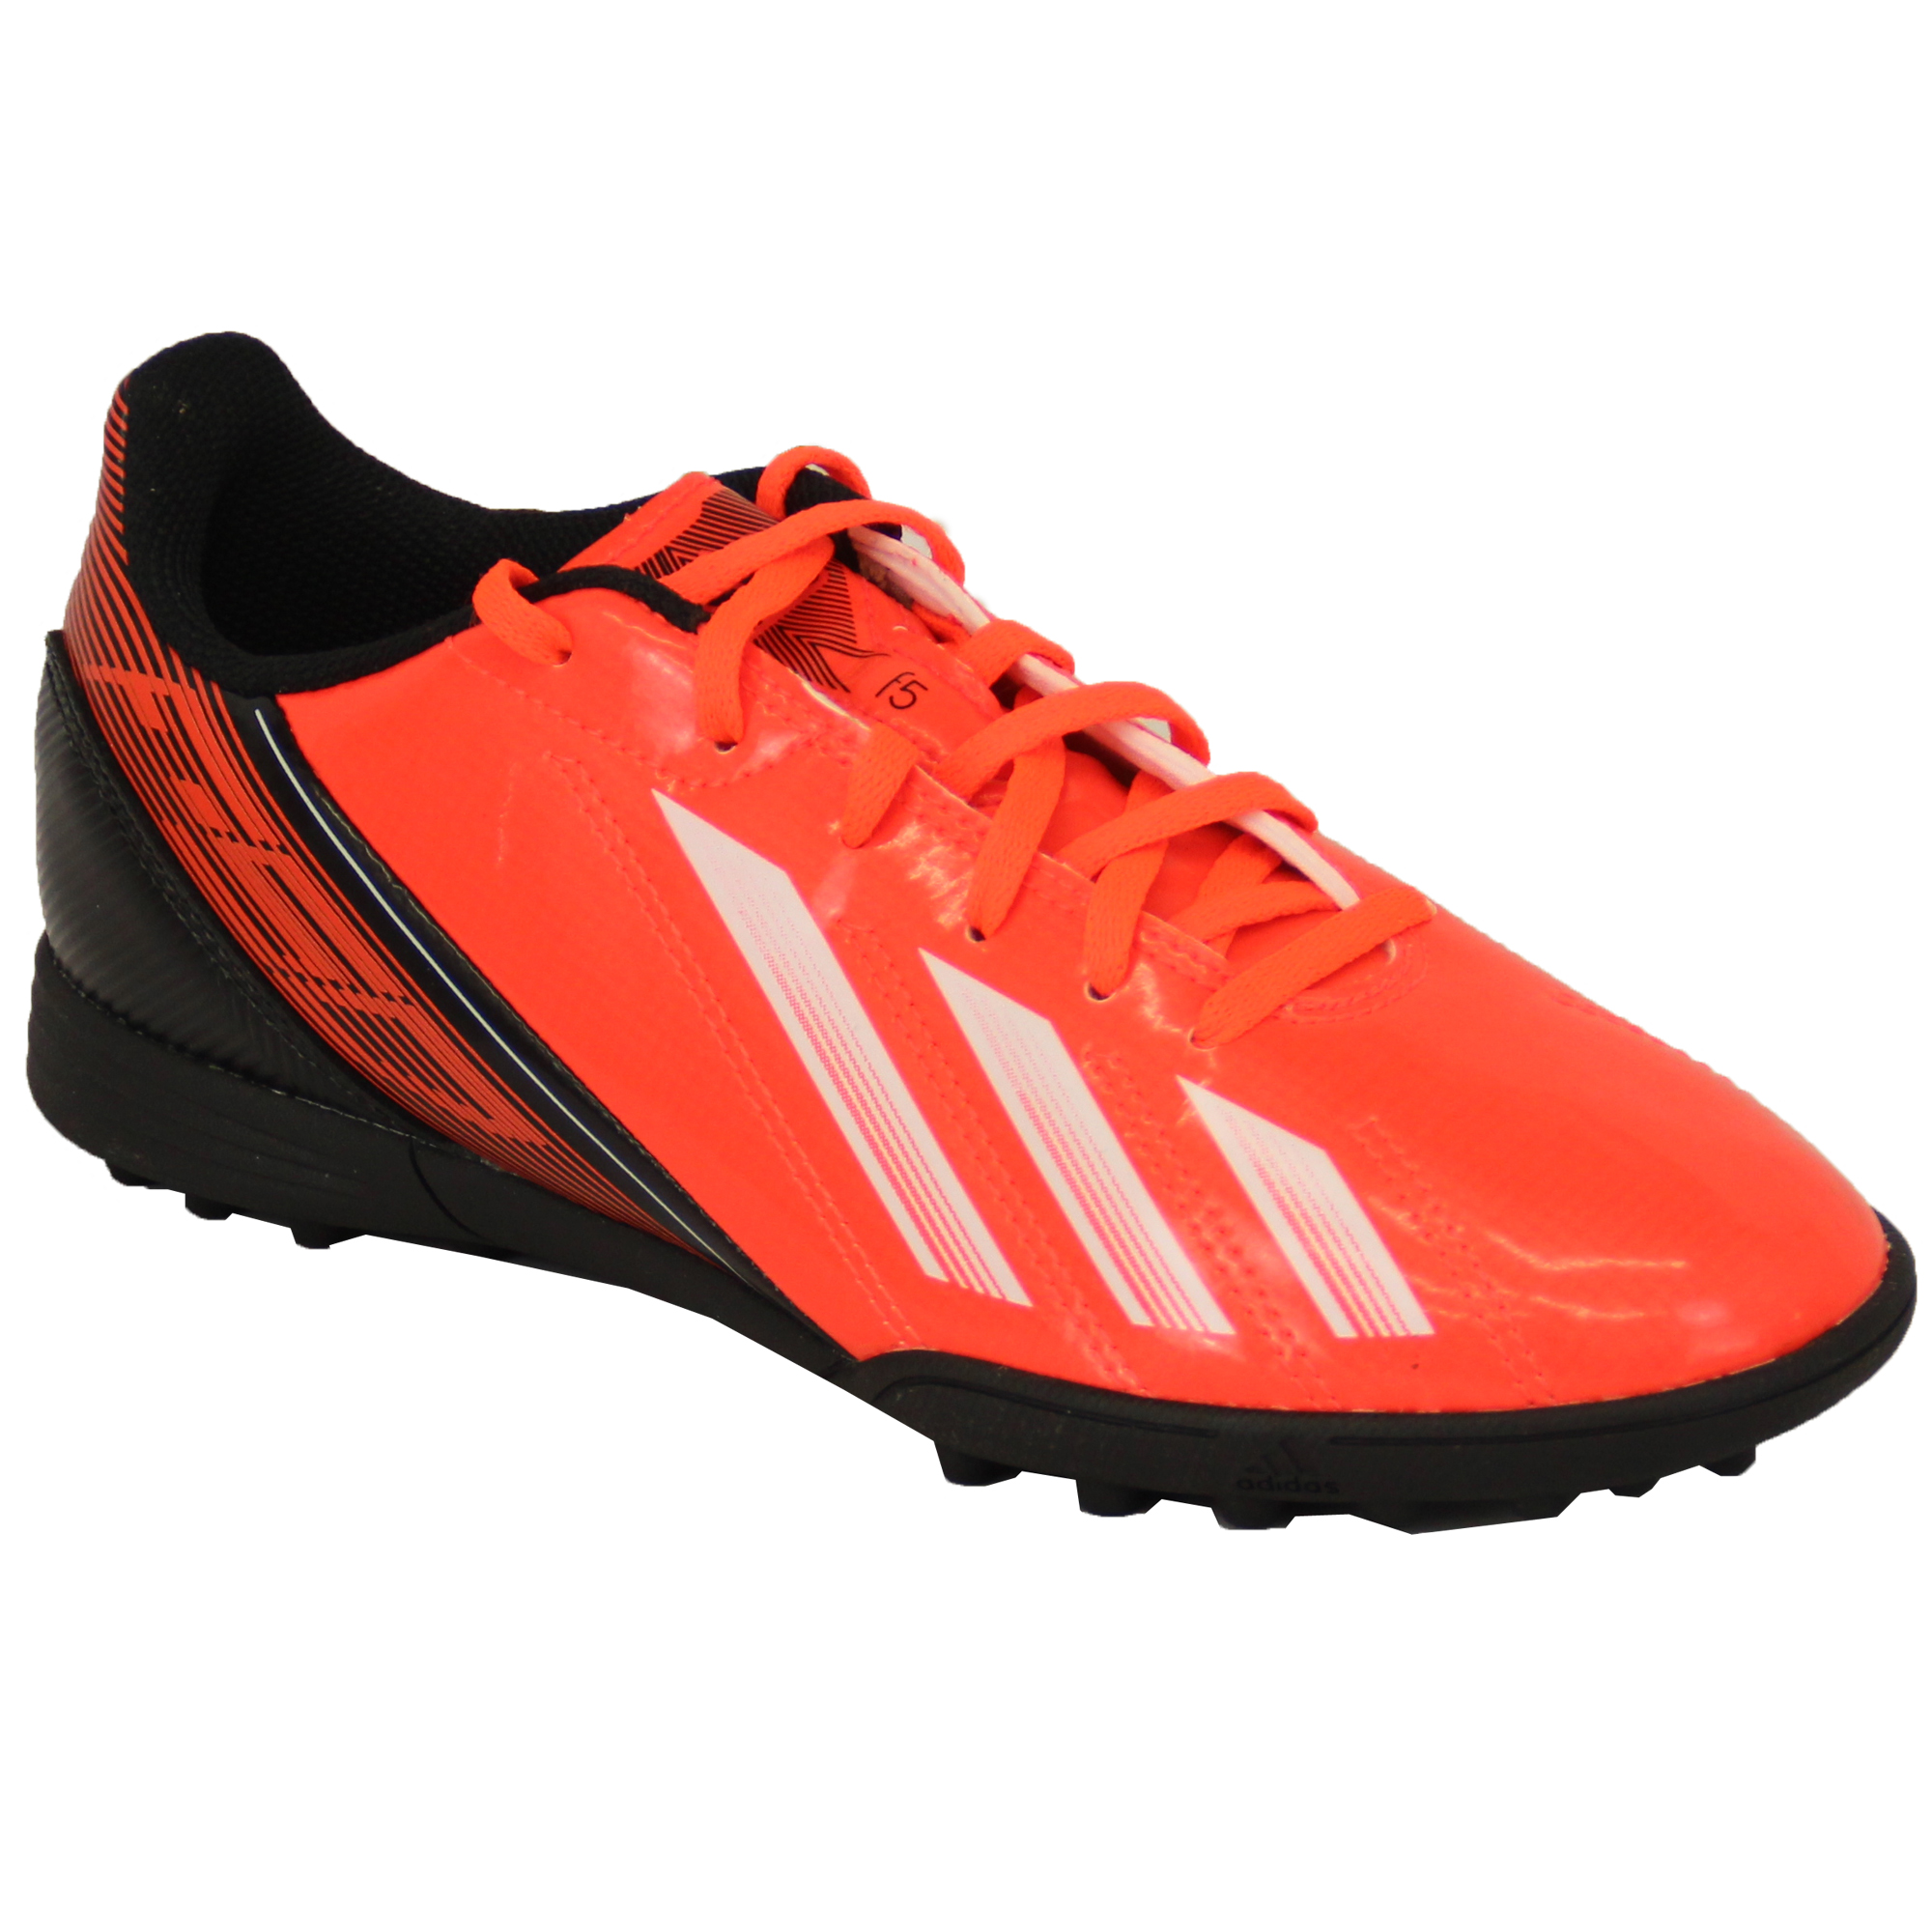 Boys-ADIDAS-Trainers-Kids-Football-Soccer-Astro-Turf-Shoes-Lace-Up-Neon-Youth thumbnail 10